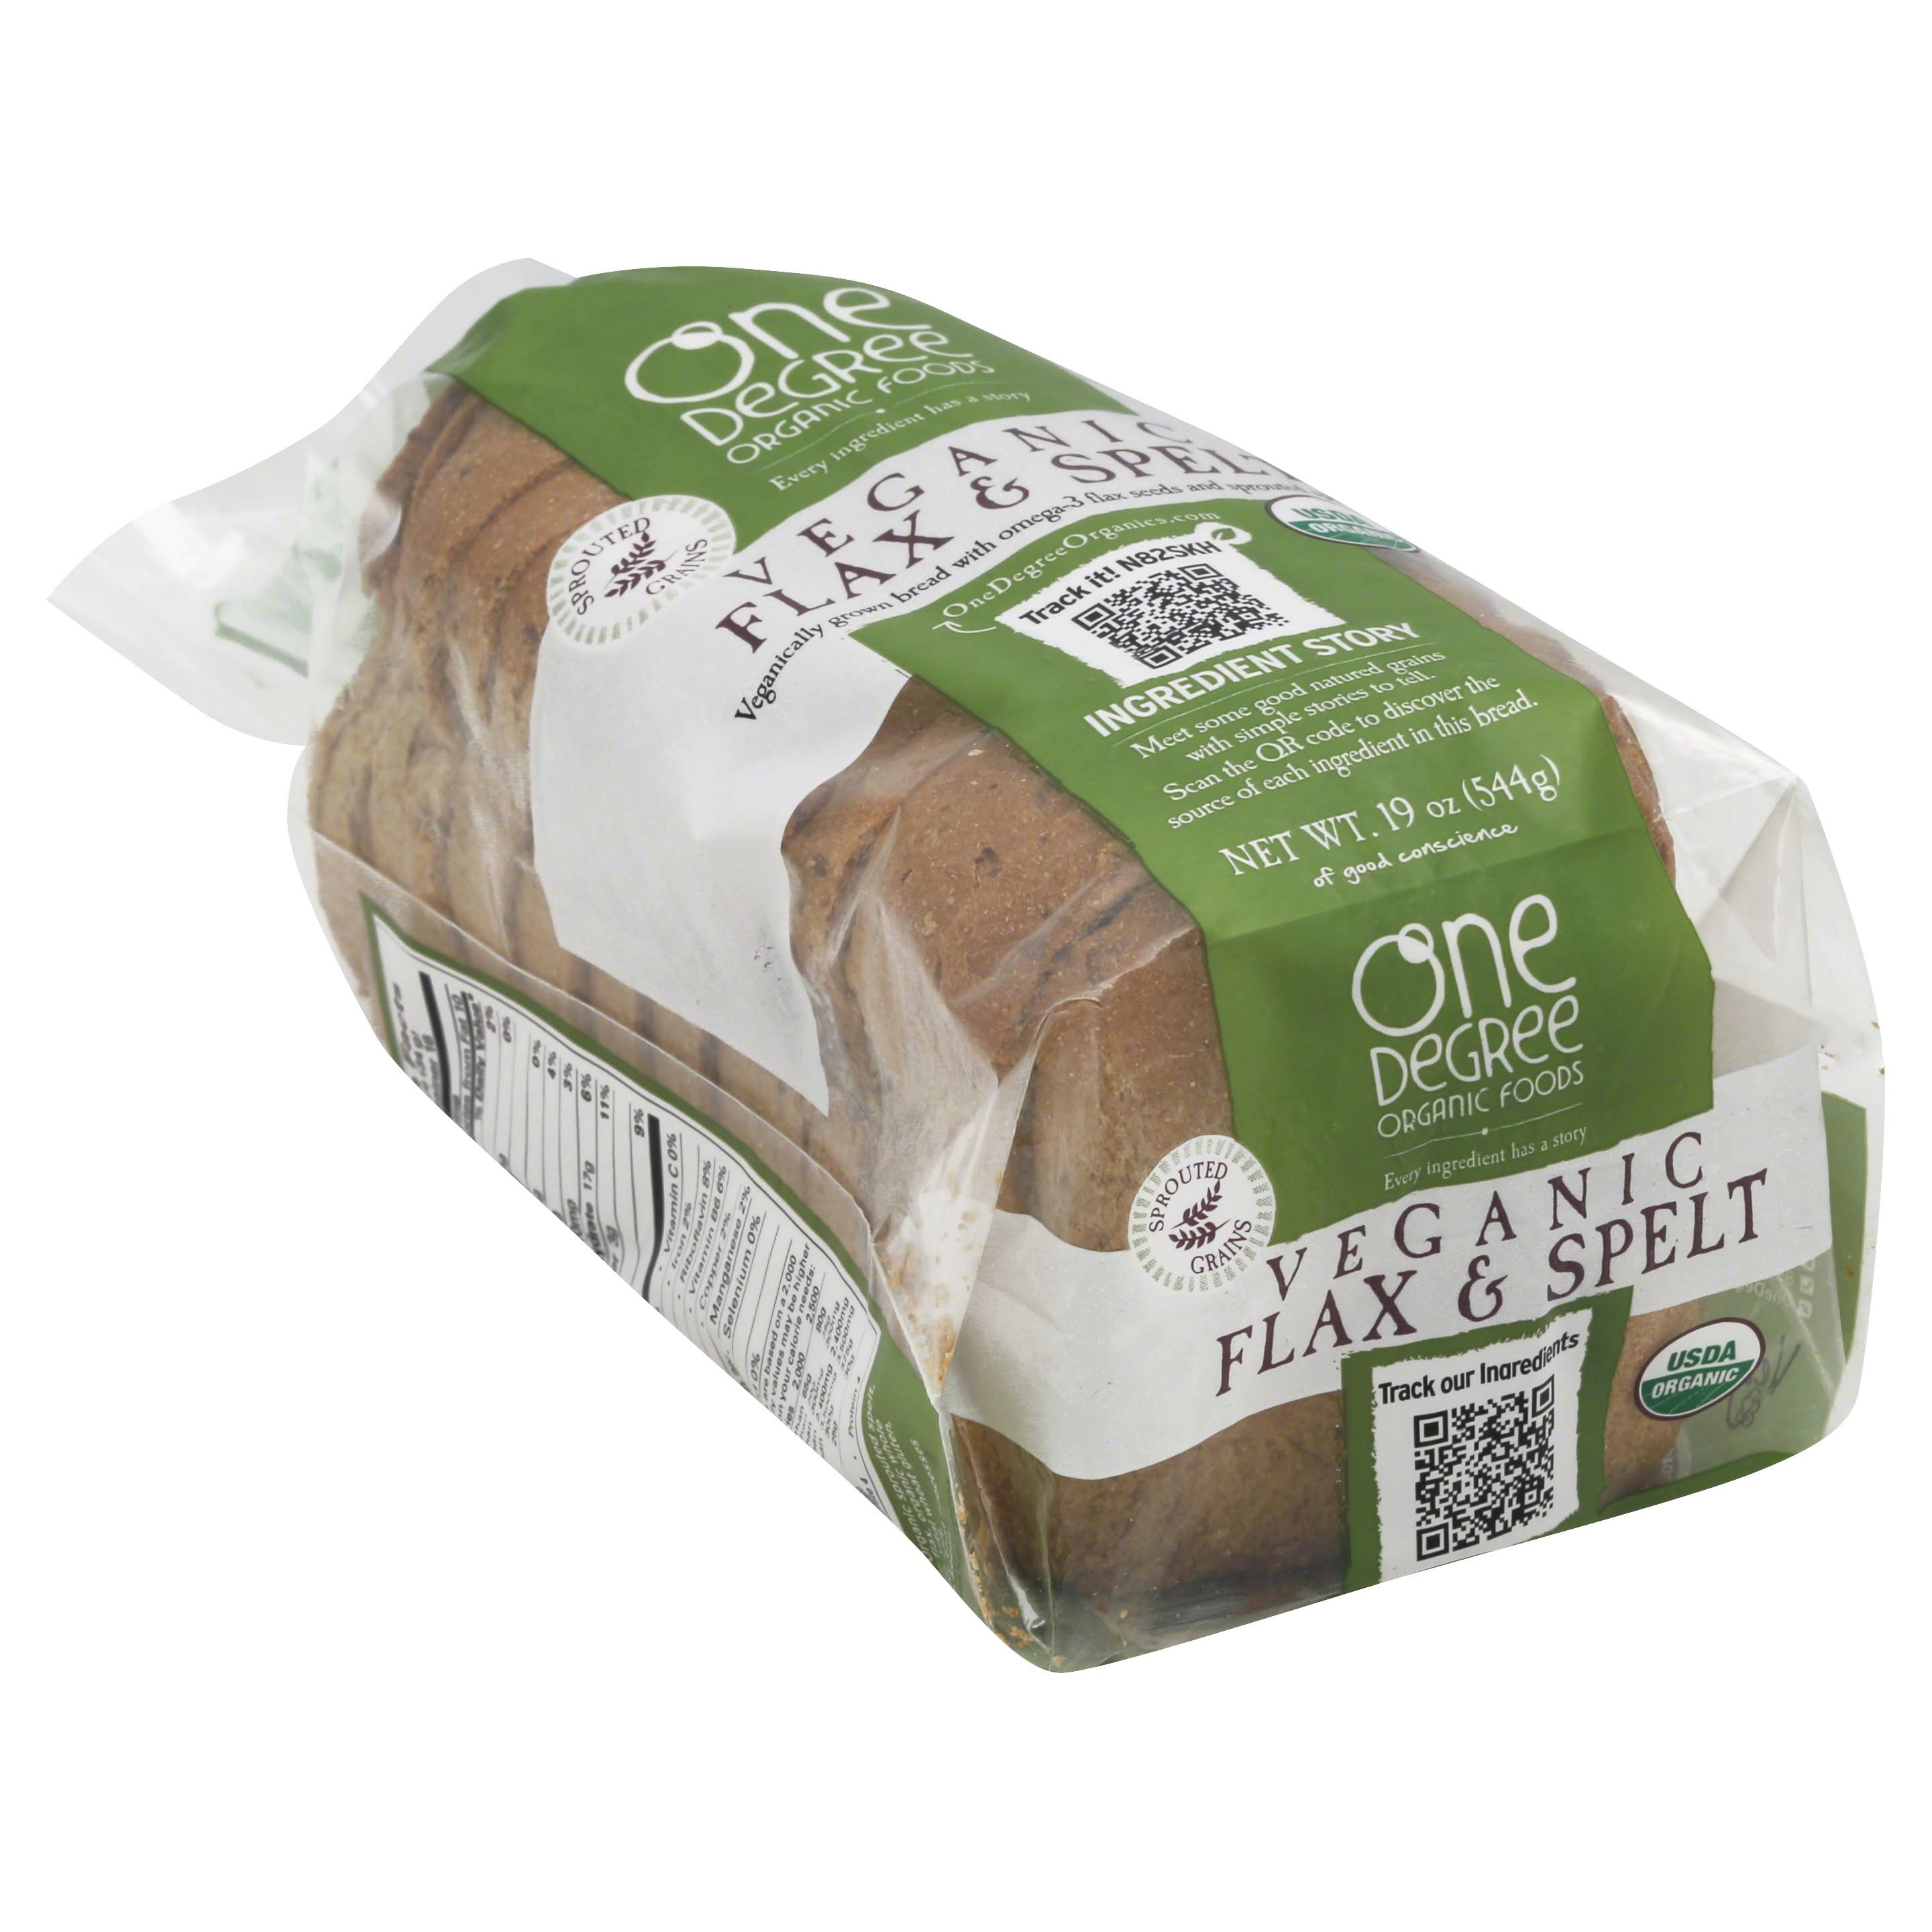 One Degree Organic Foods Veganic Flax and Spelt Bread